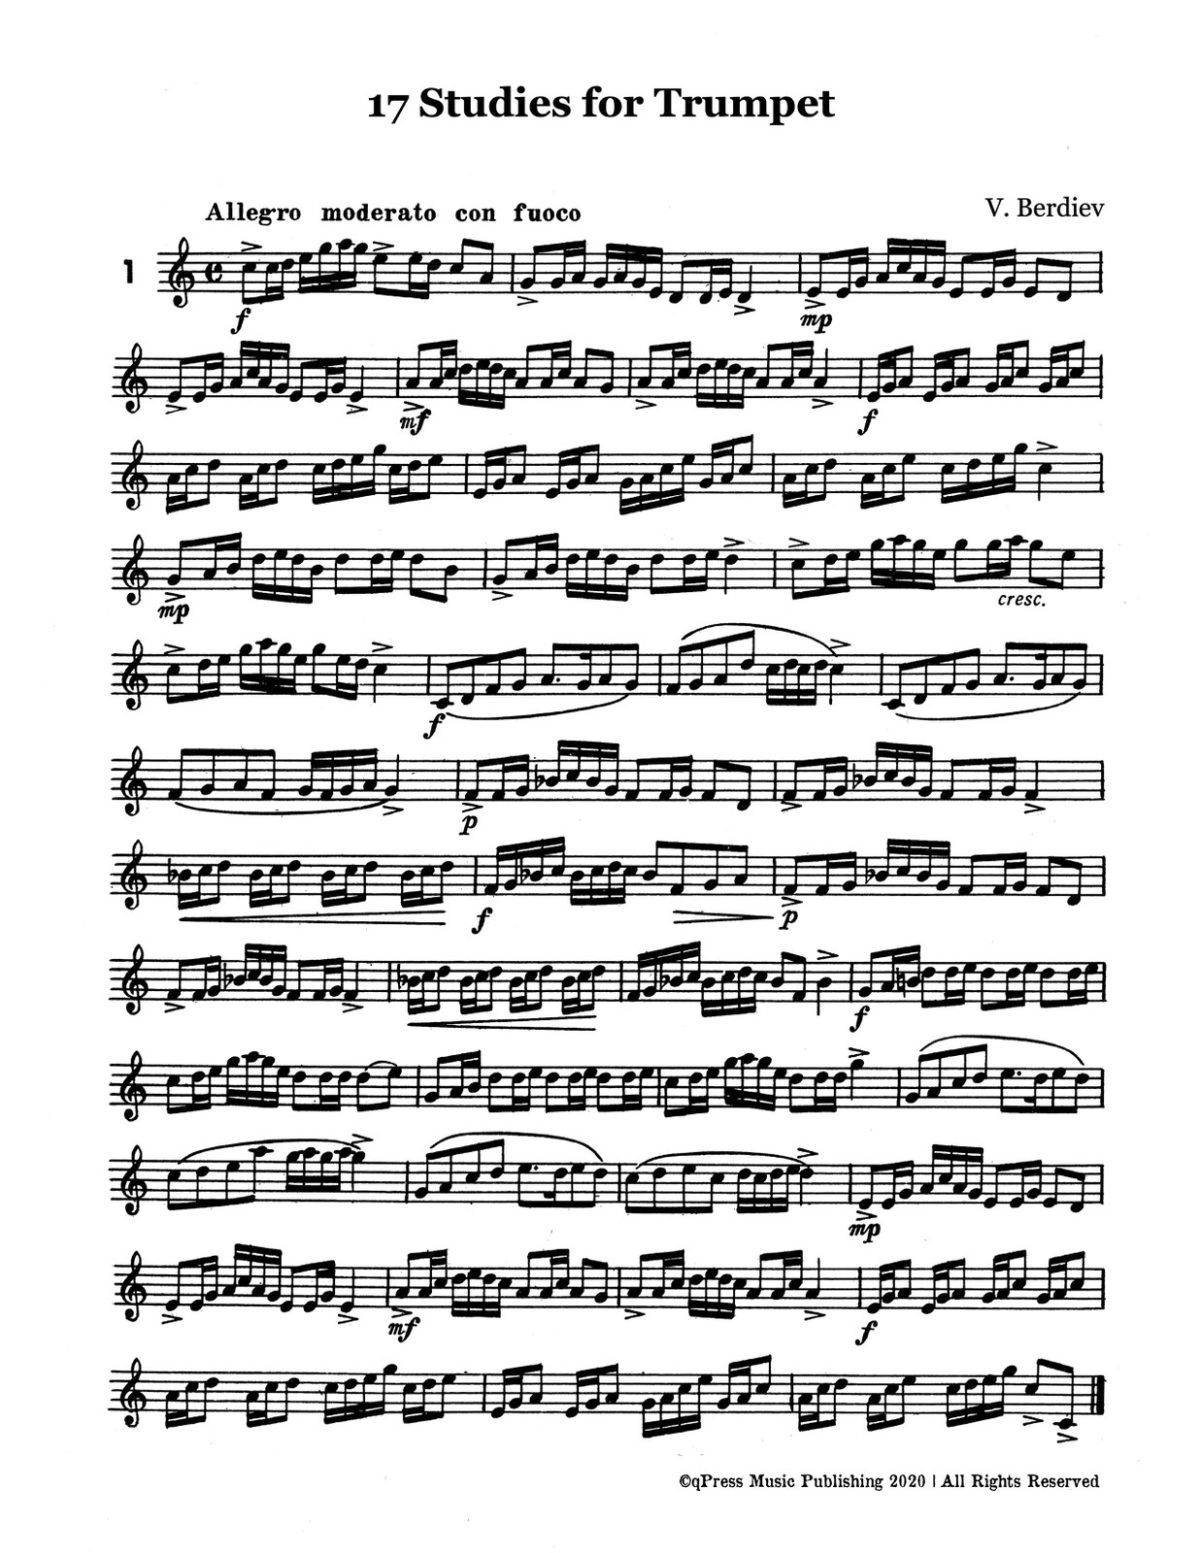 Berdiev, 17 Studies for Trumpet-p02